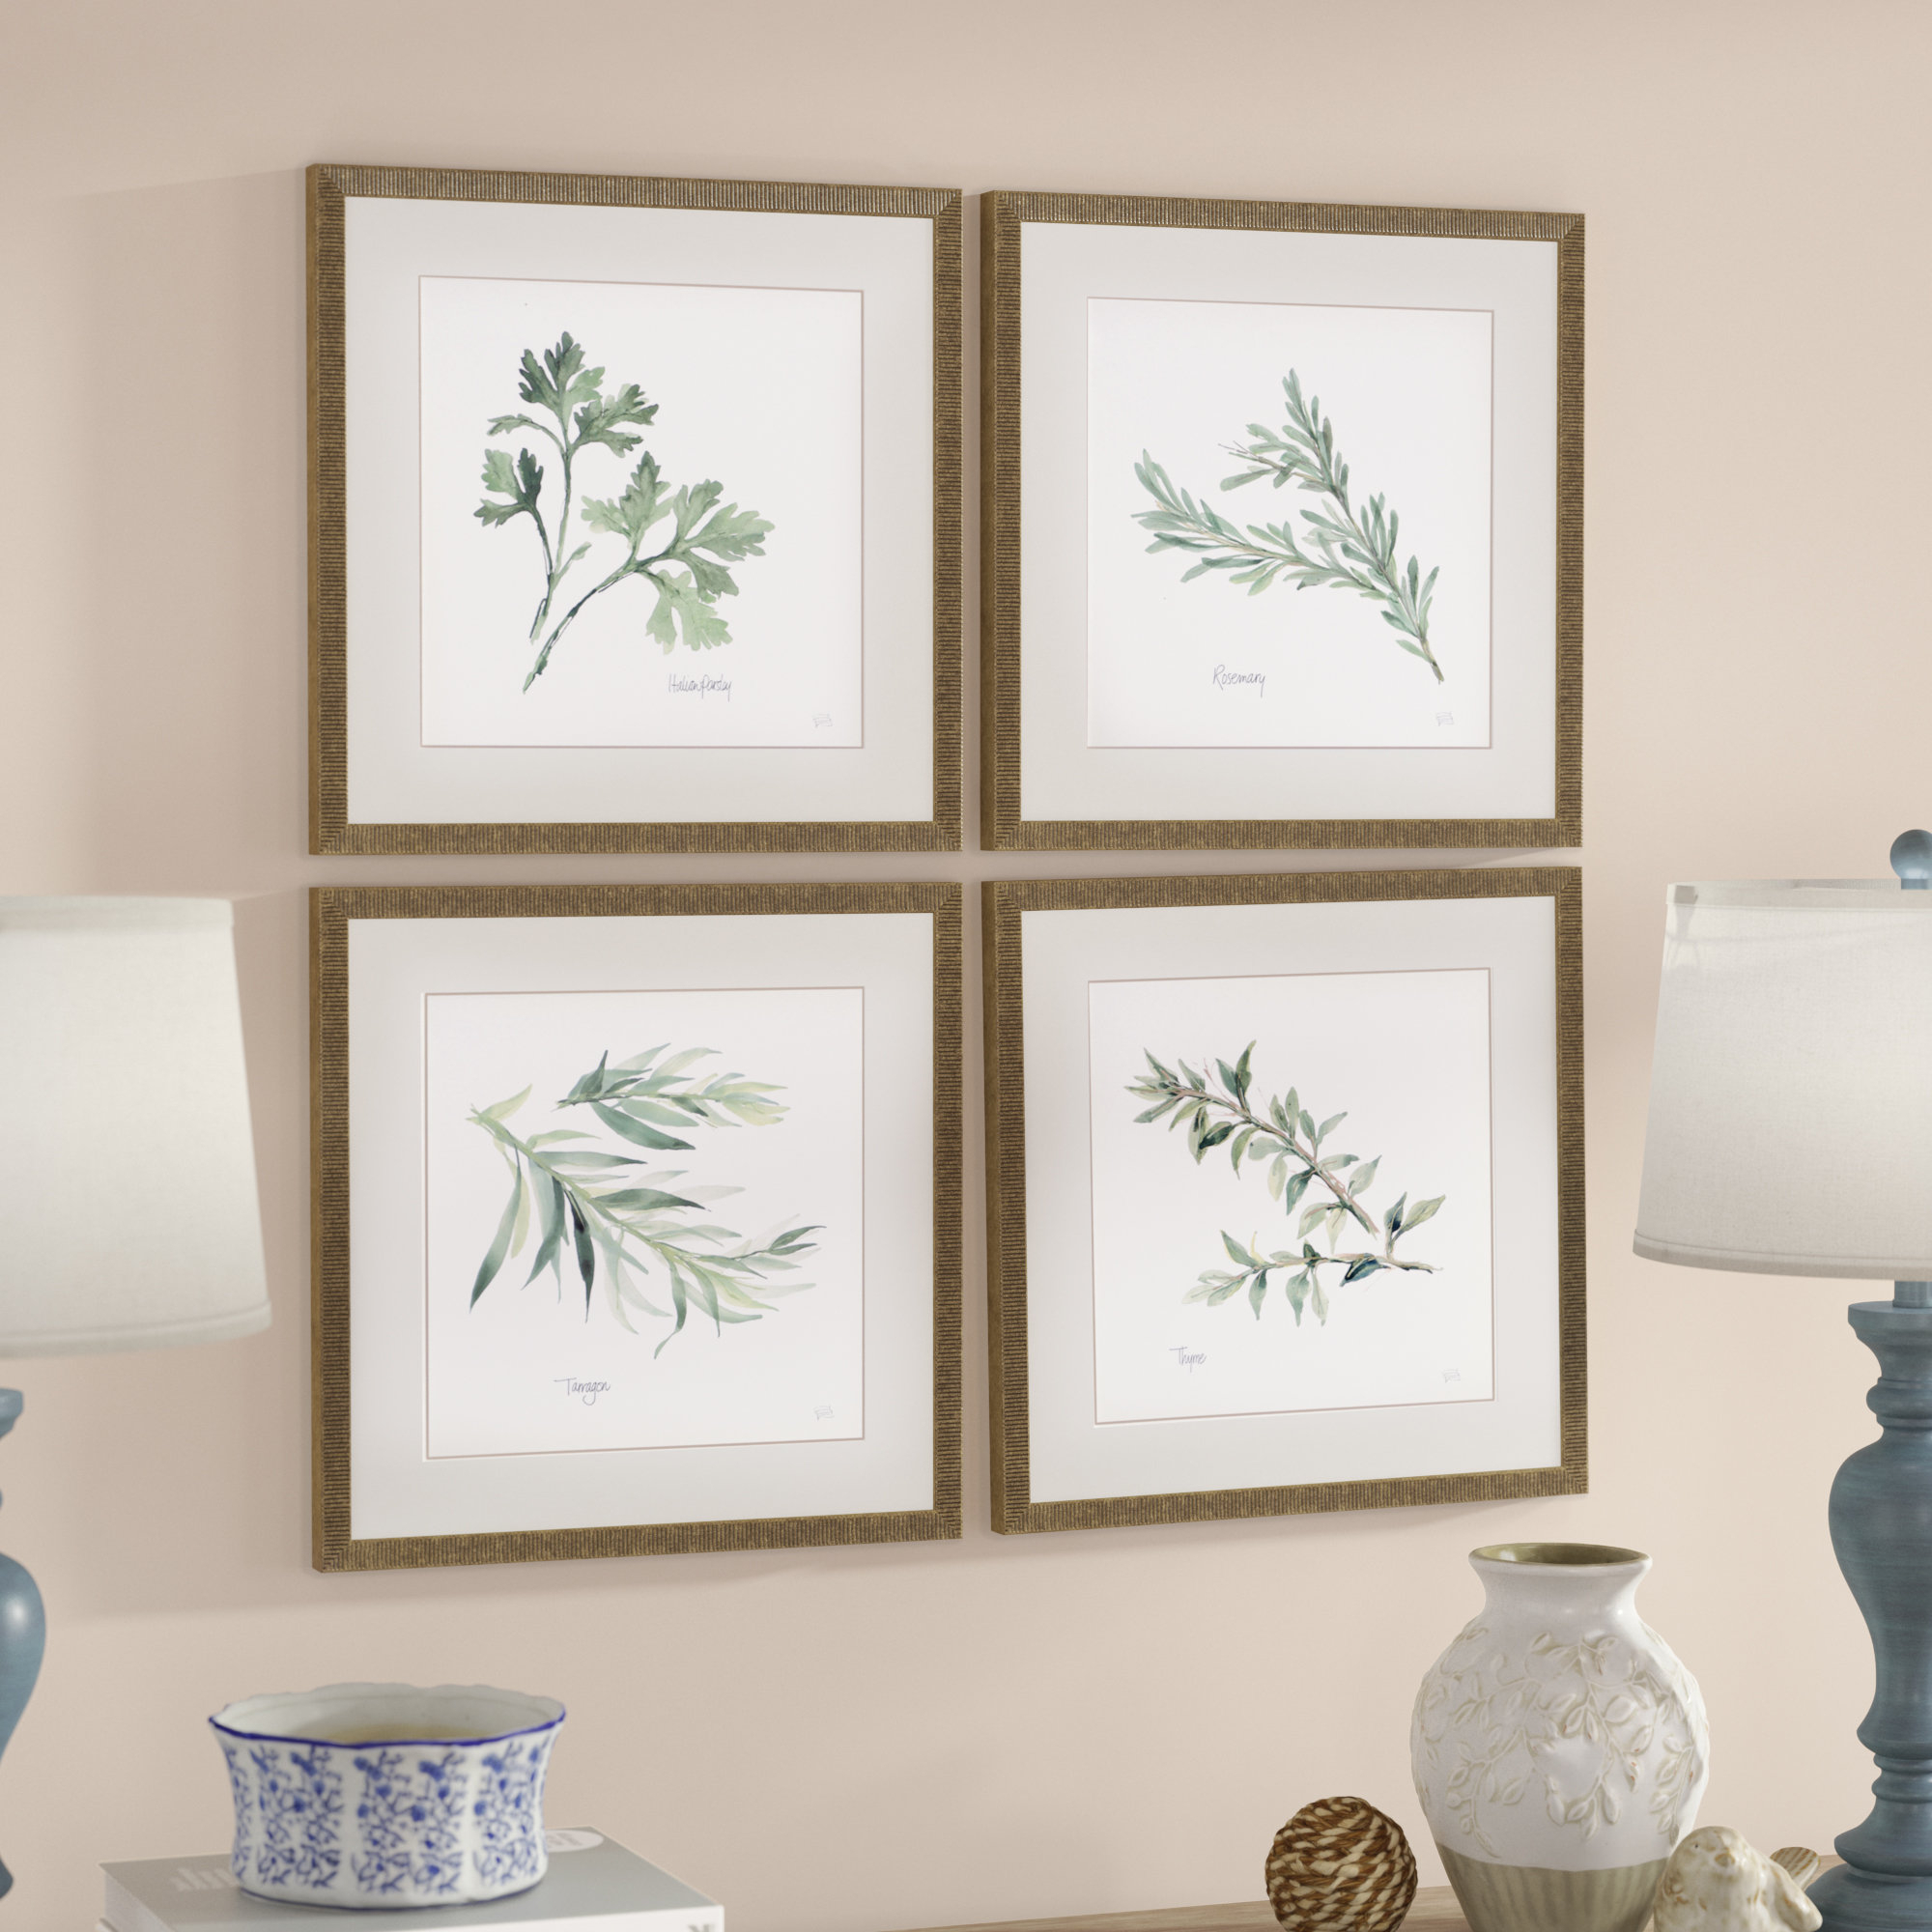 2019 4 Piece Wall Decor Sets By Charlton Home Within Lark Manor 'herbs' 4 Piece Framed Graphic Art Print Set & Reviews (View 1 of 20)